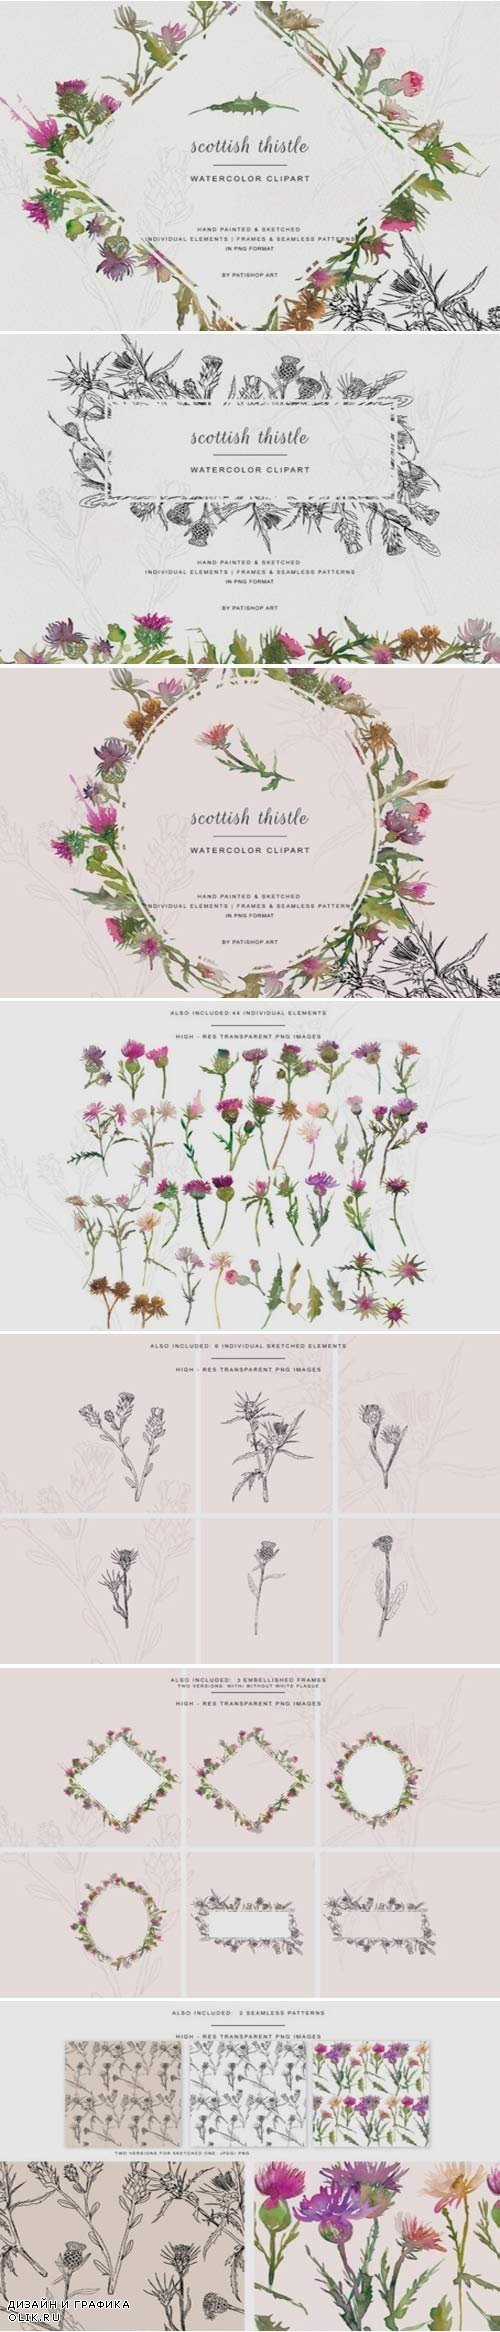 Hand Painted & Sketched Thistle - 3607253